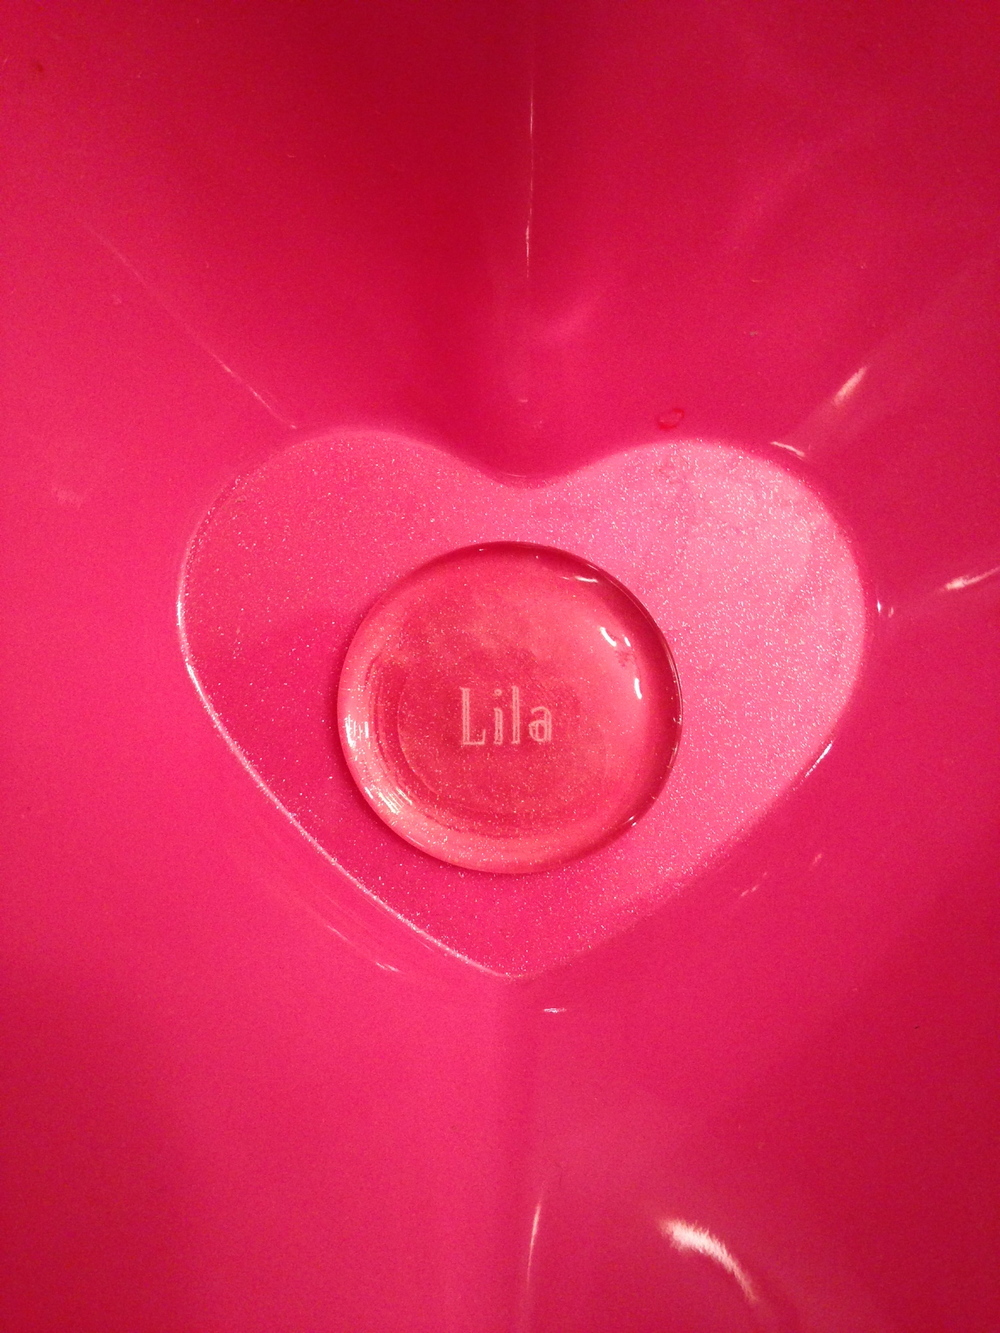 Lila's Stone in a Heart Bowl